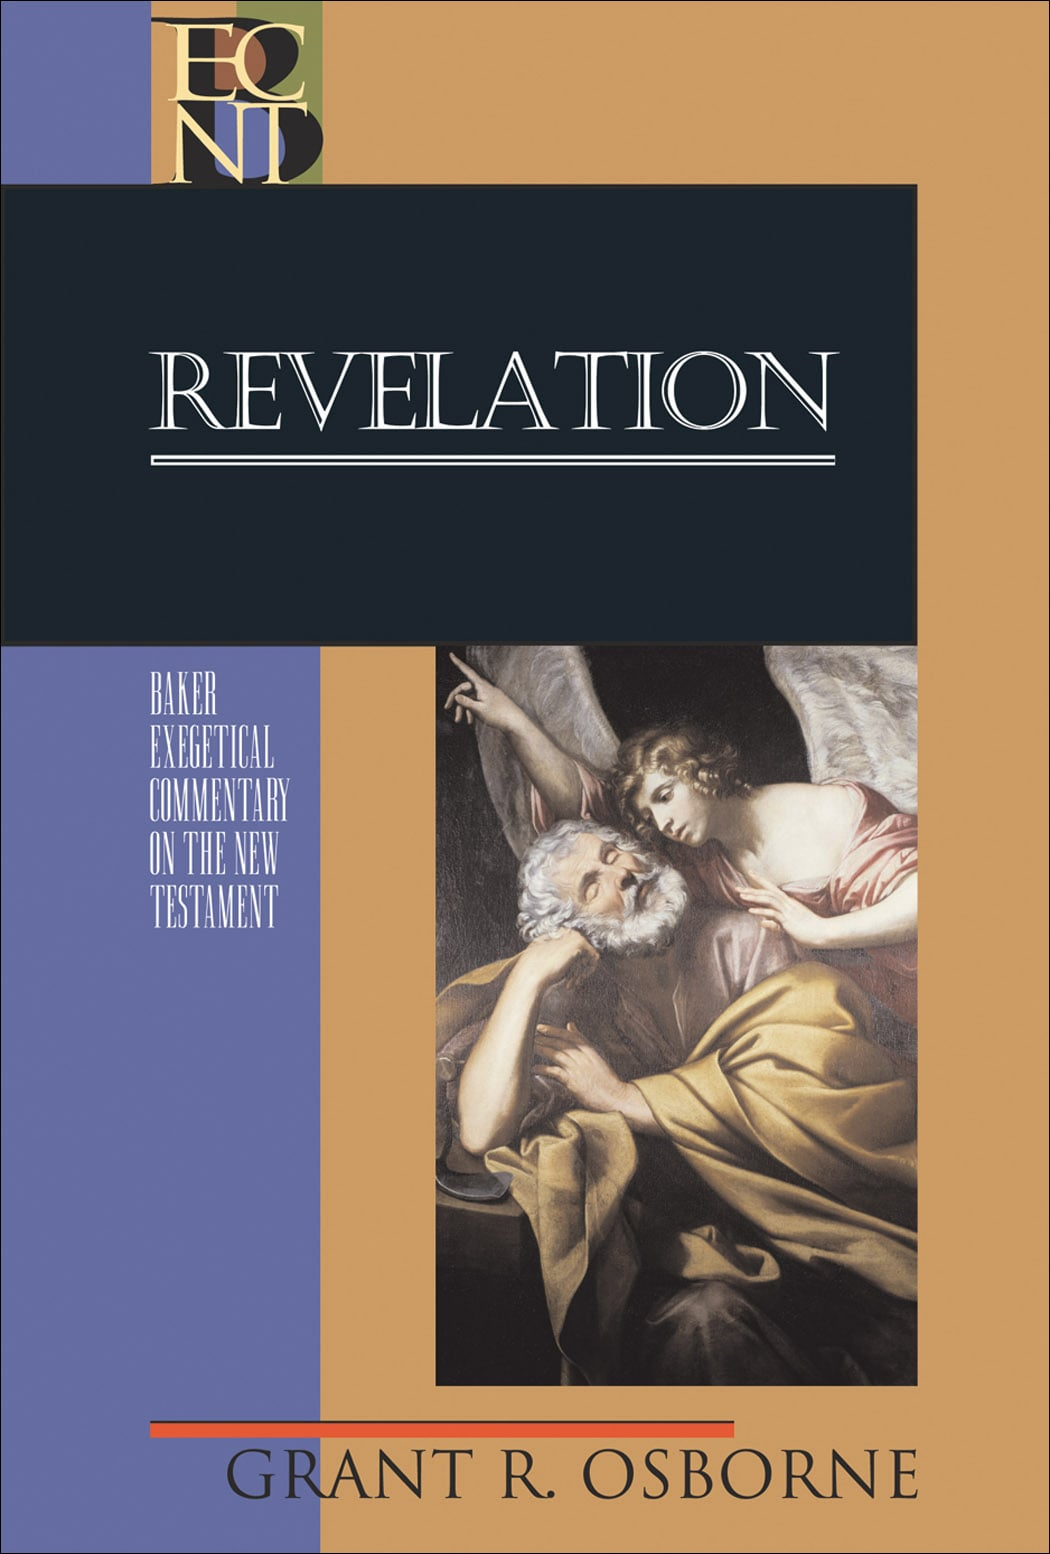 online essays book of revelation Shane wood is the editor of this eclectic anthology of essays on various texts and topics from the book of revelation this is not a commentary on revelation per se.